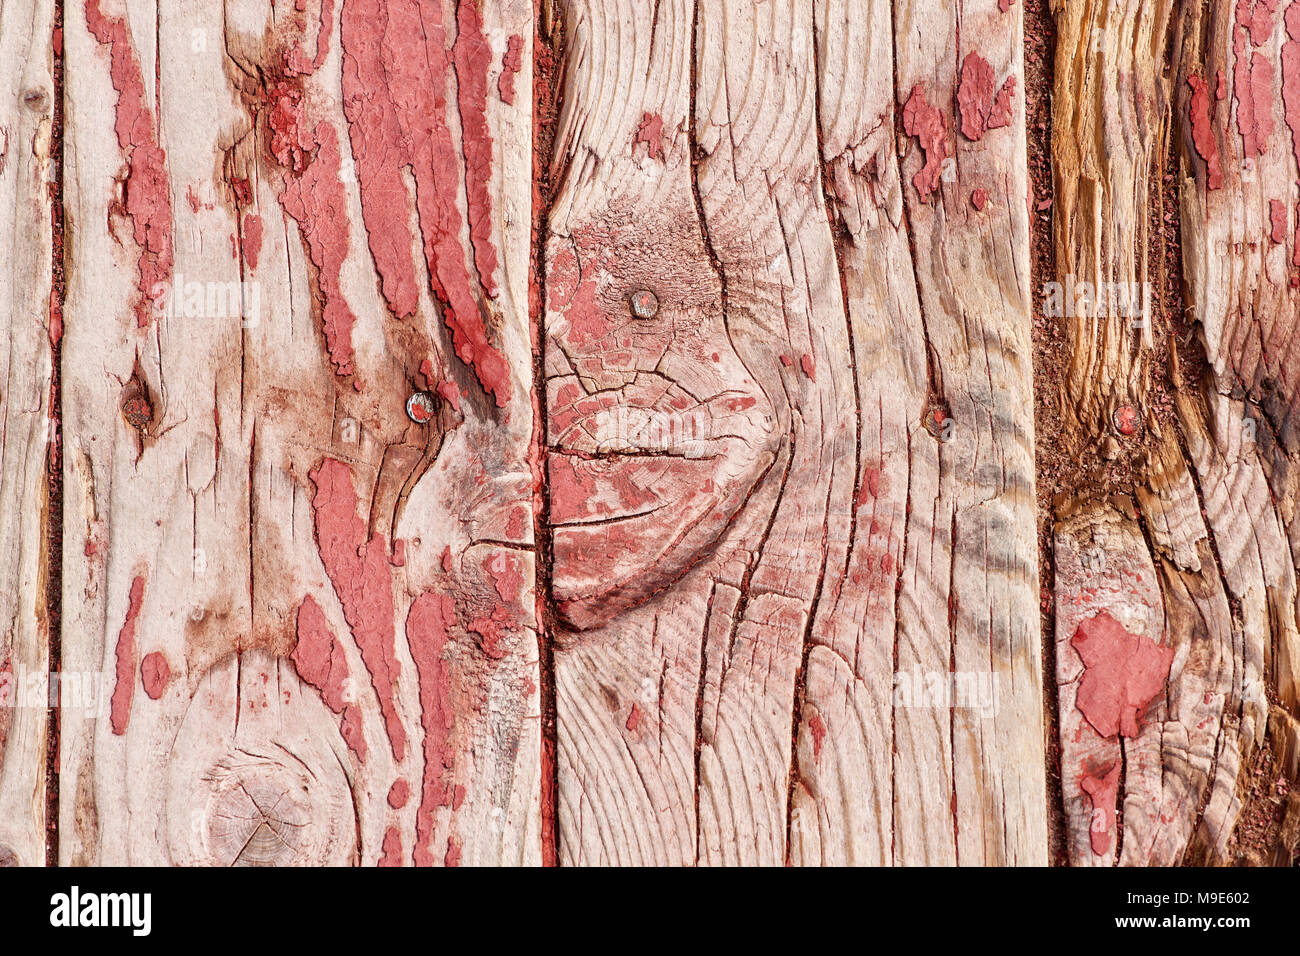 Grunge, weathered vertical wooden planks with a traces of old red or purple paint, nail heads visible - Stock Image